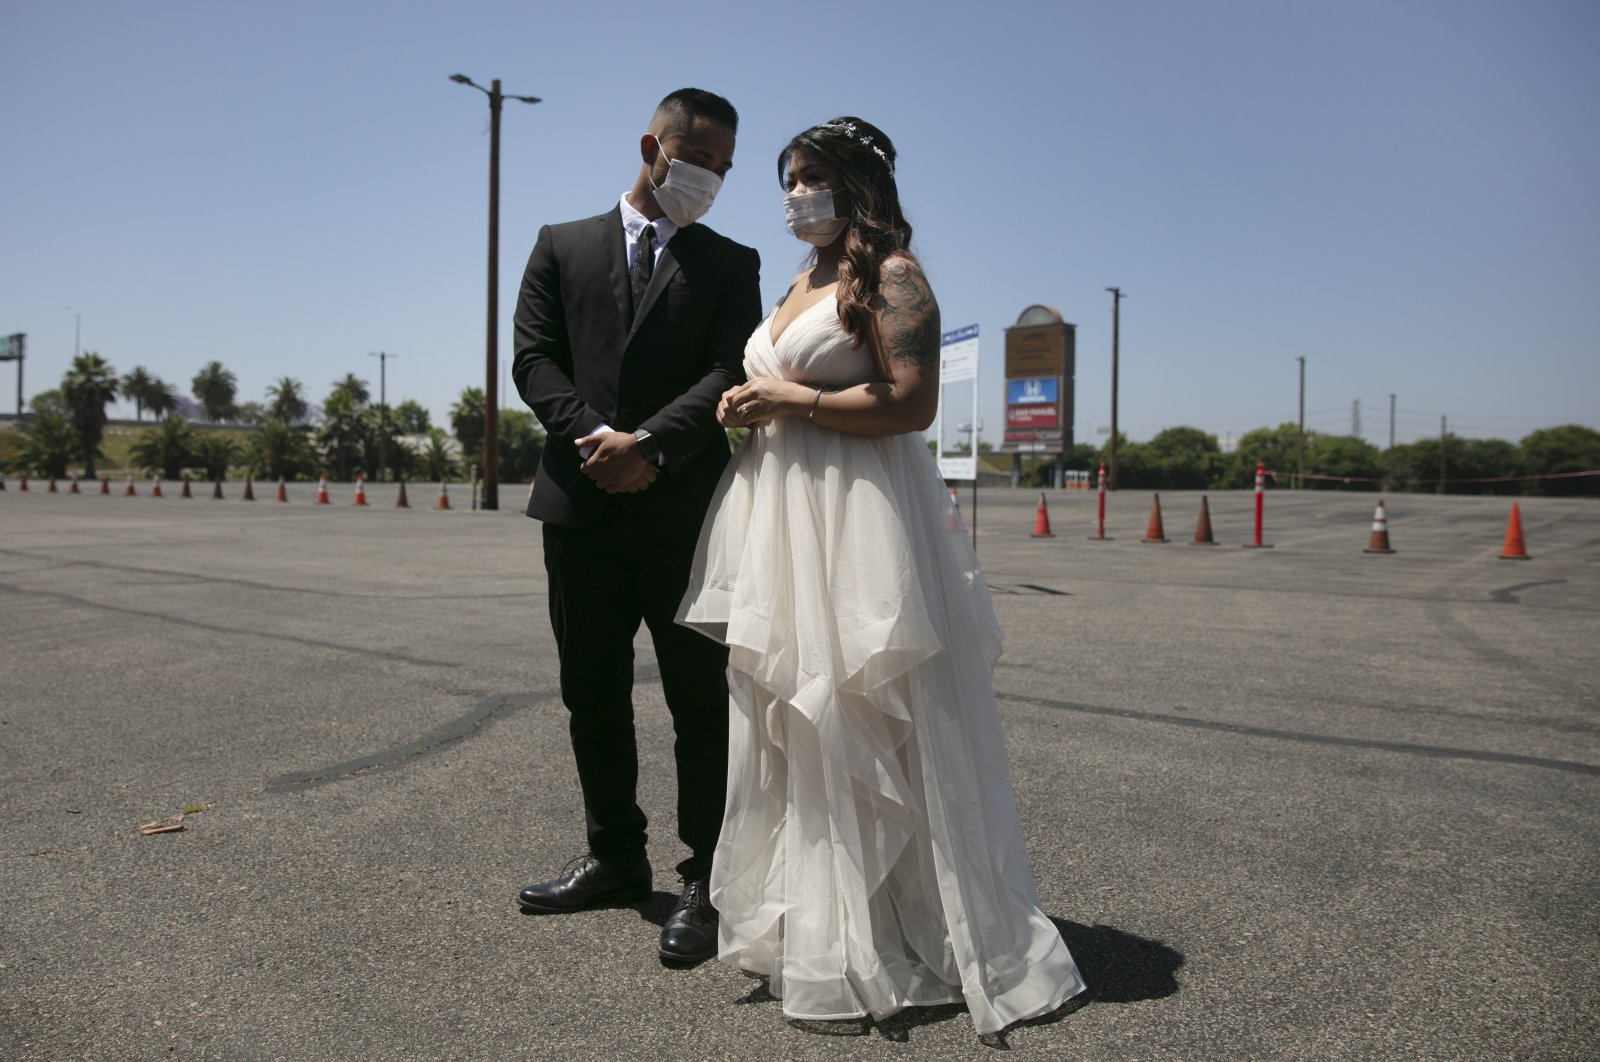 Roselle Querido, right, and her bridegroom Mo de las Alas wait for their marriage service to begin in the parking lot of the Honda Center in Anaheim, Calif., Tuesday, May 26, 2020. (AP Photo)